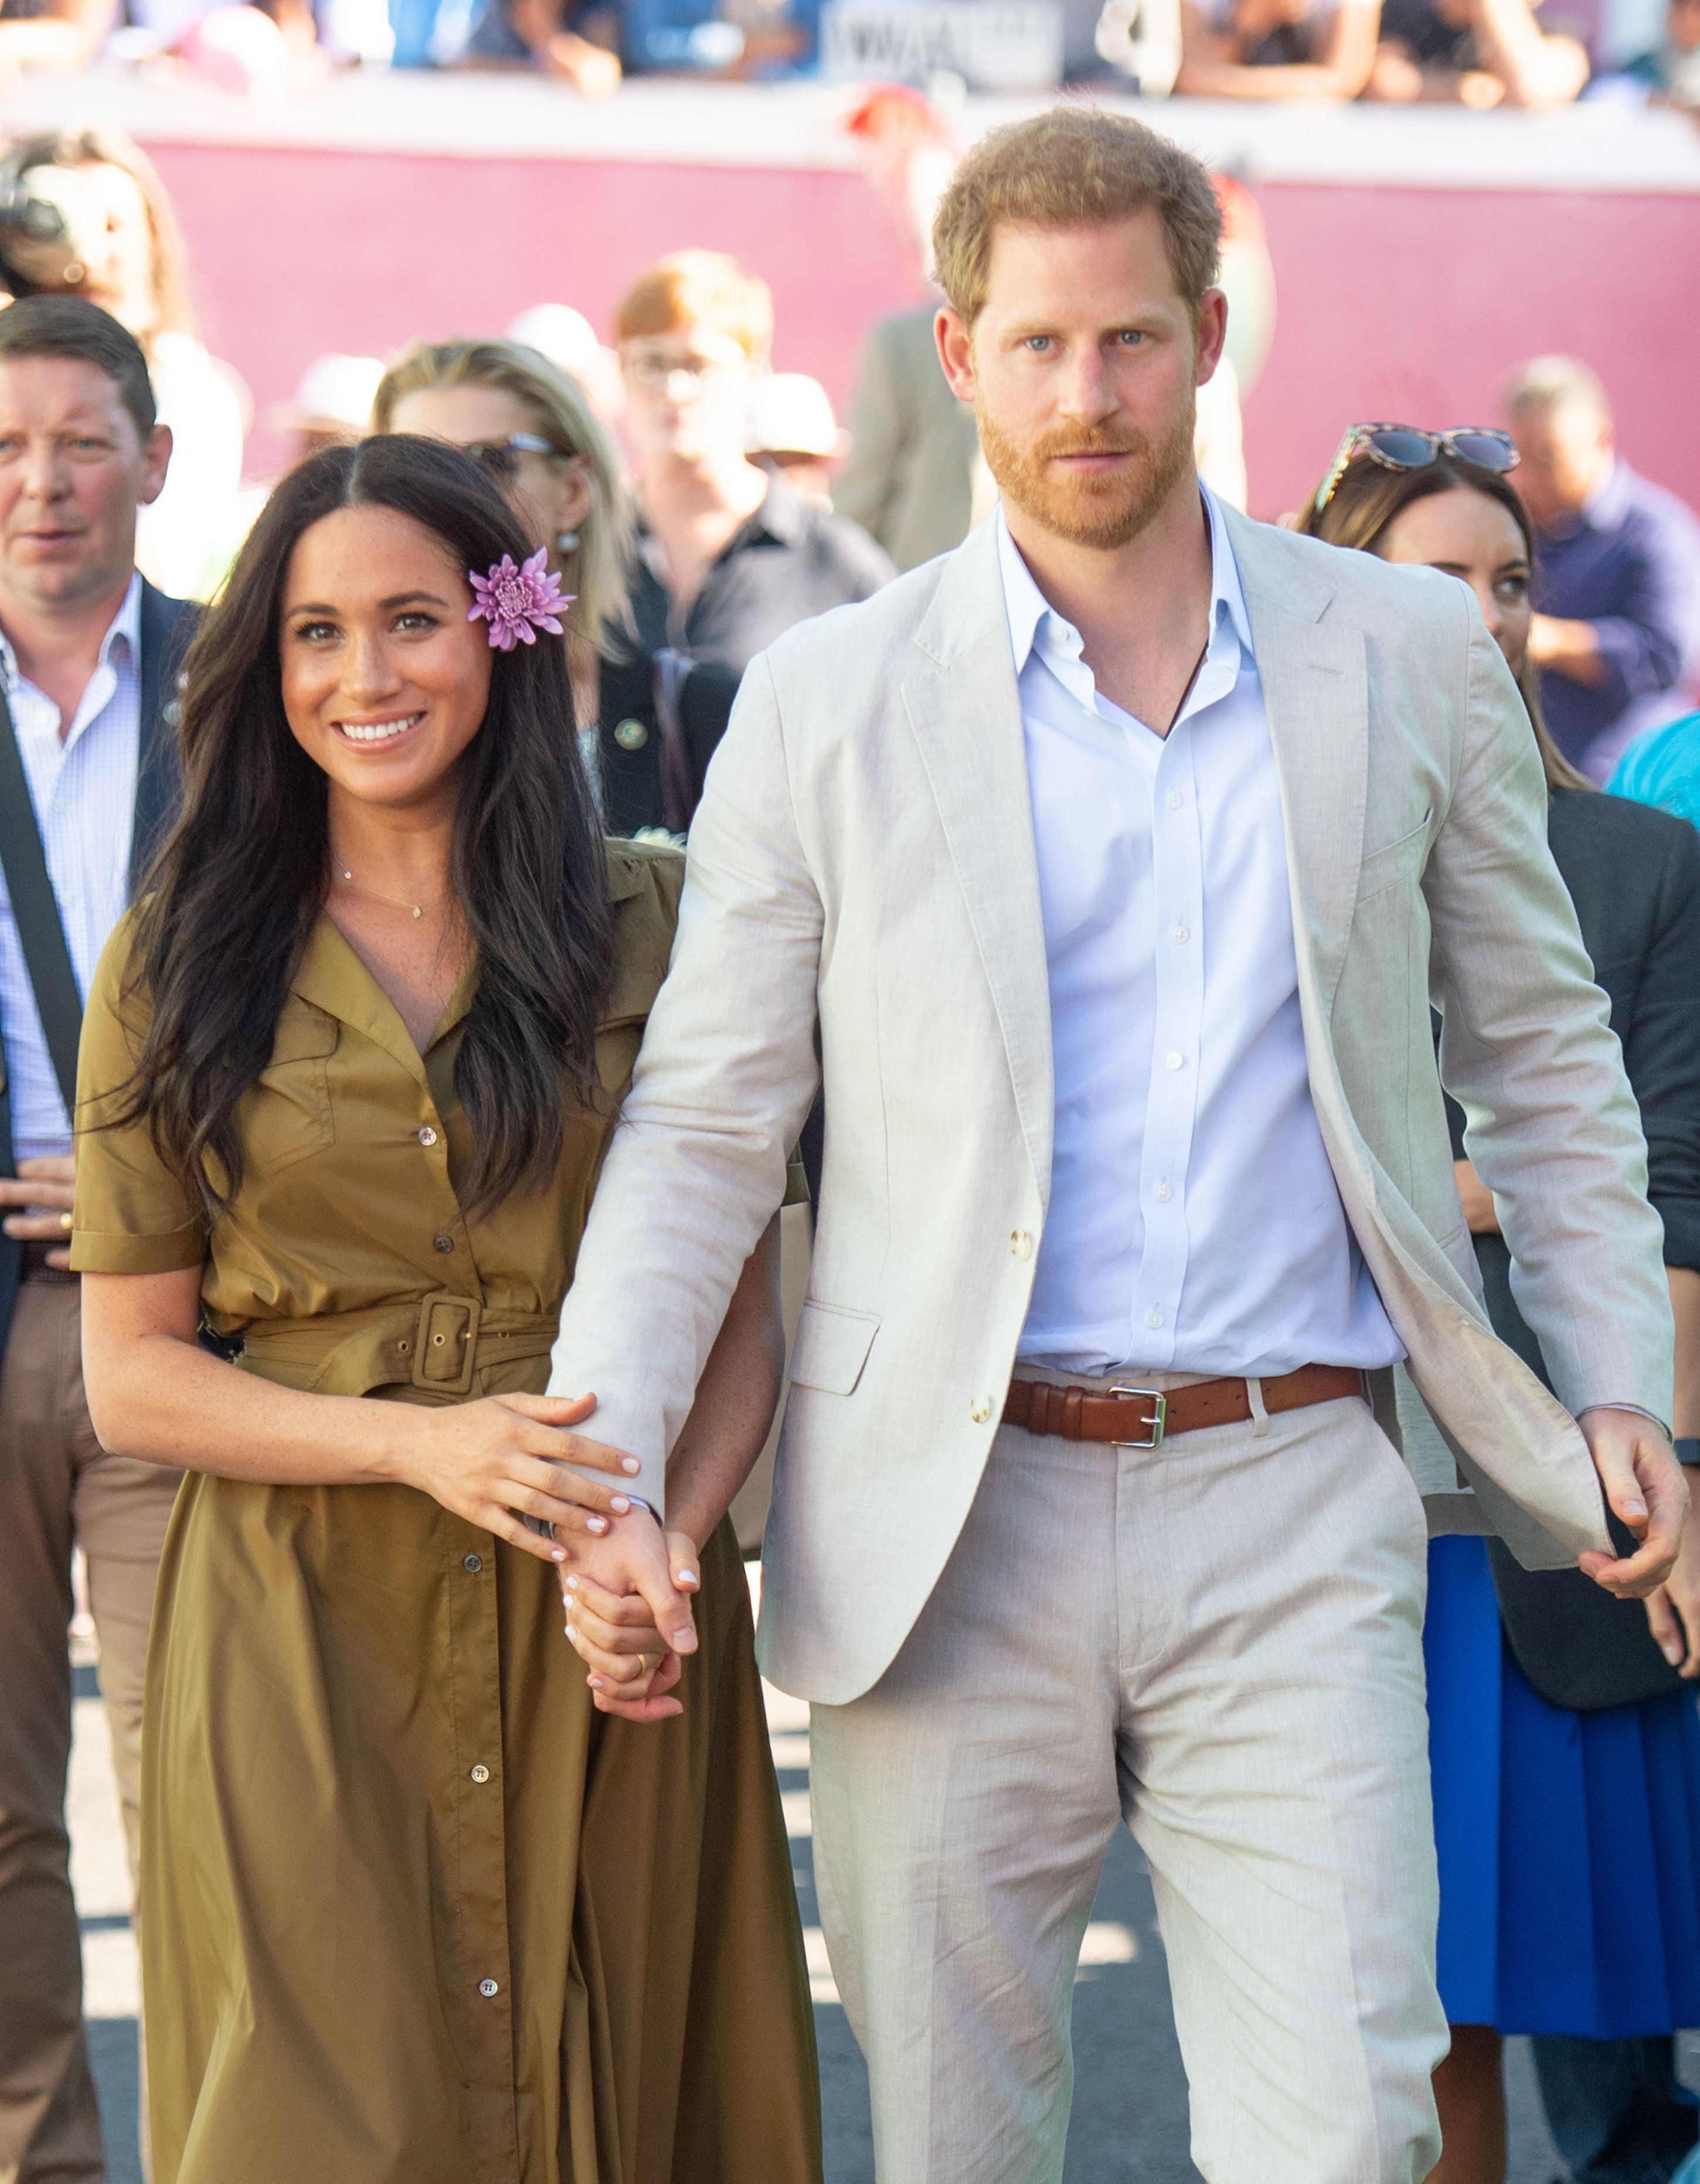 Prince Harry just shared what it's like dating as a member of the royal family